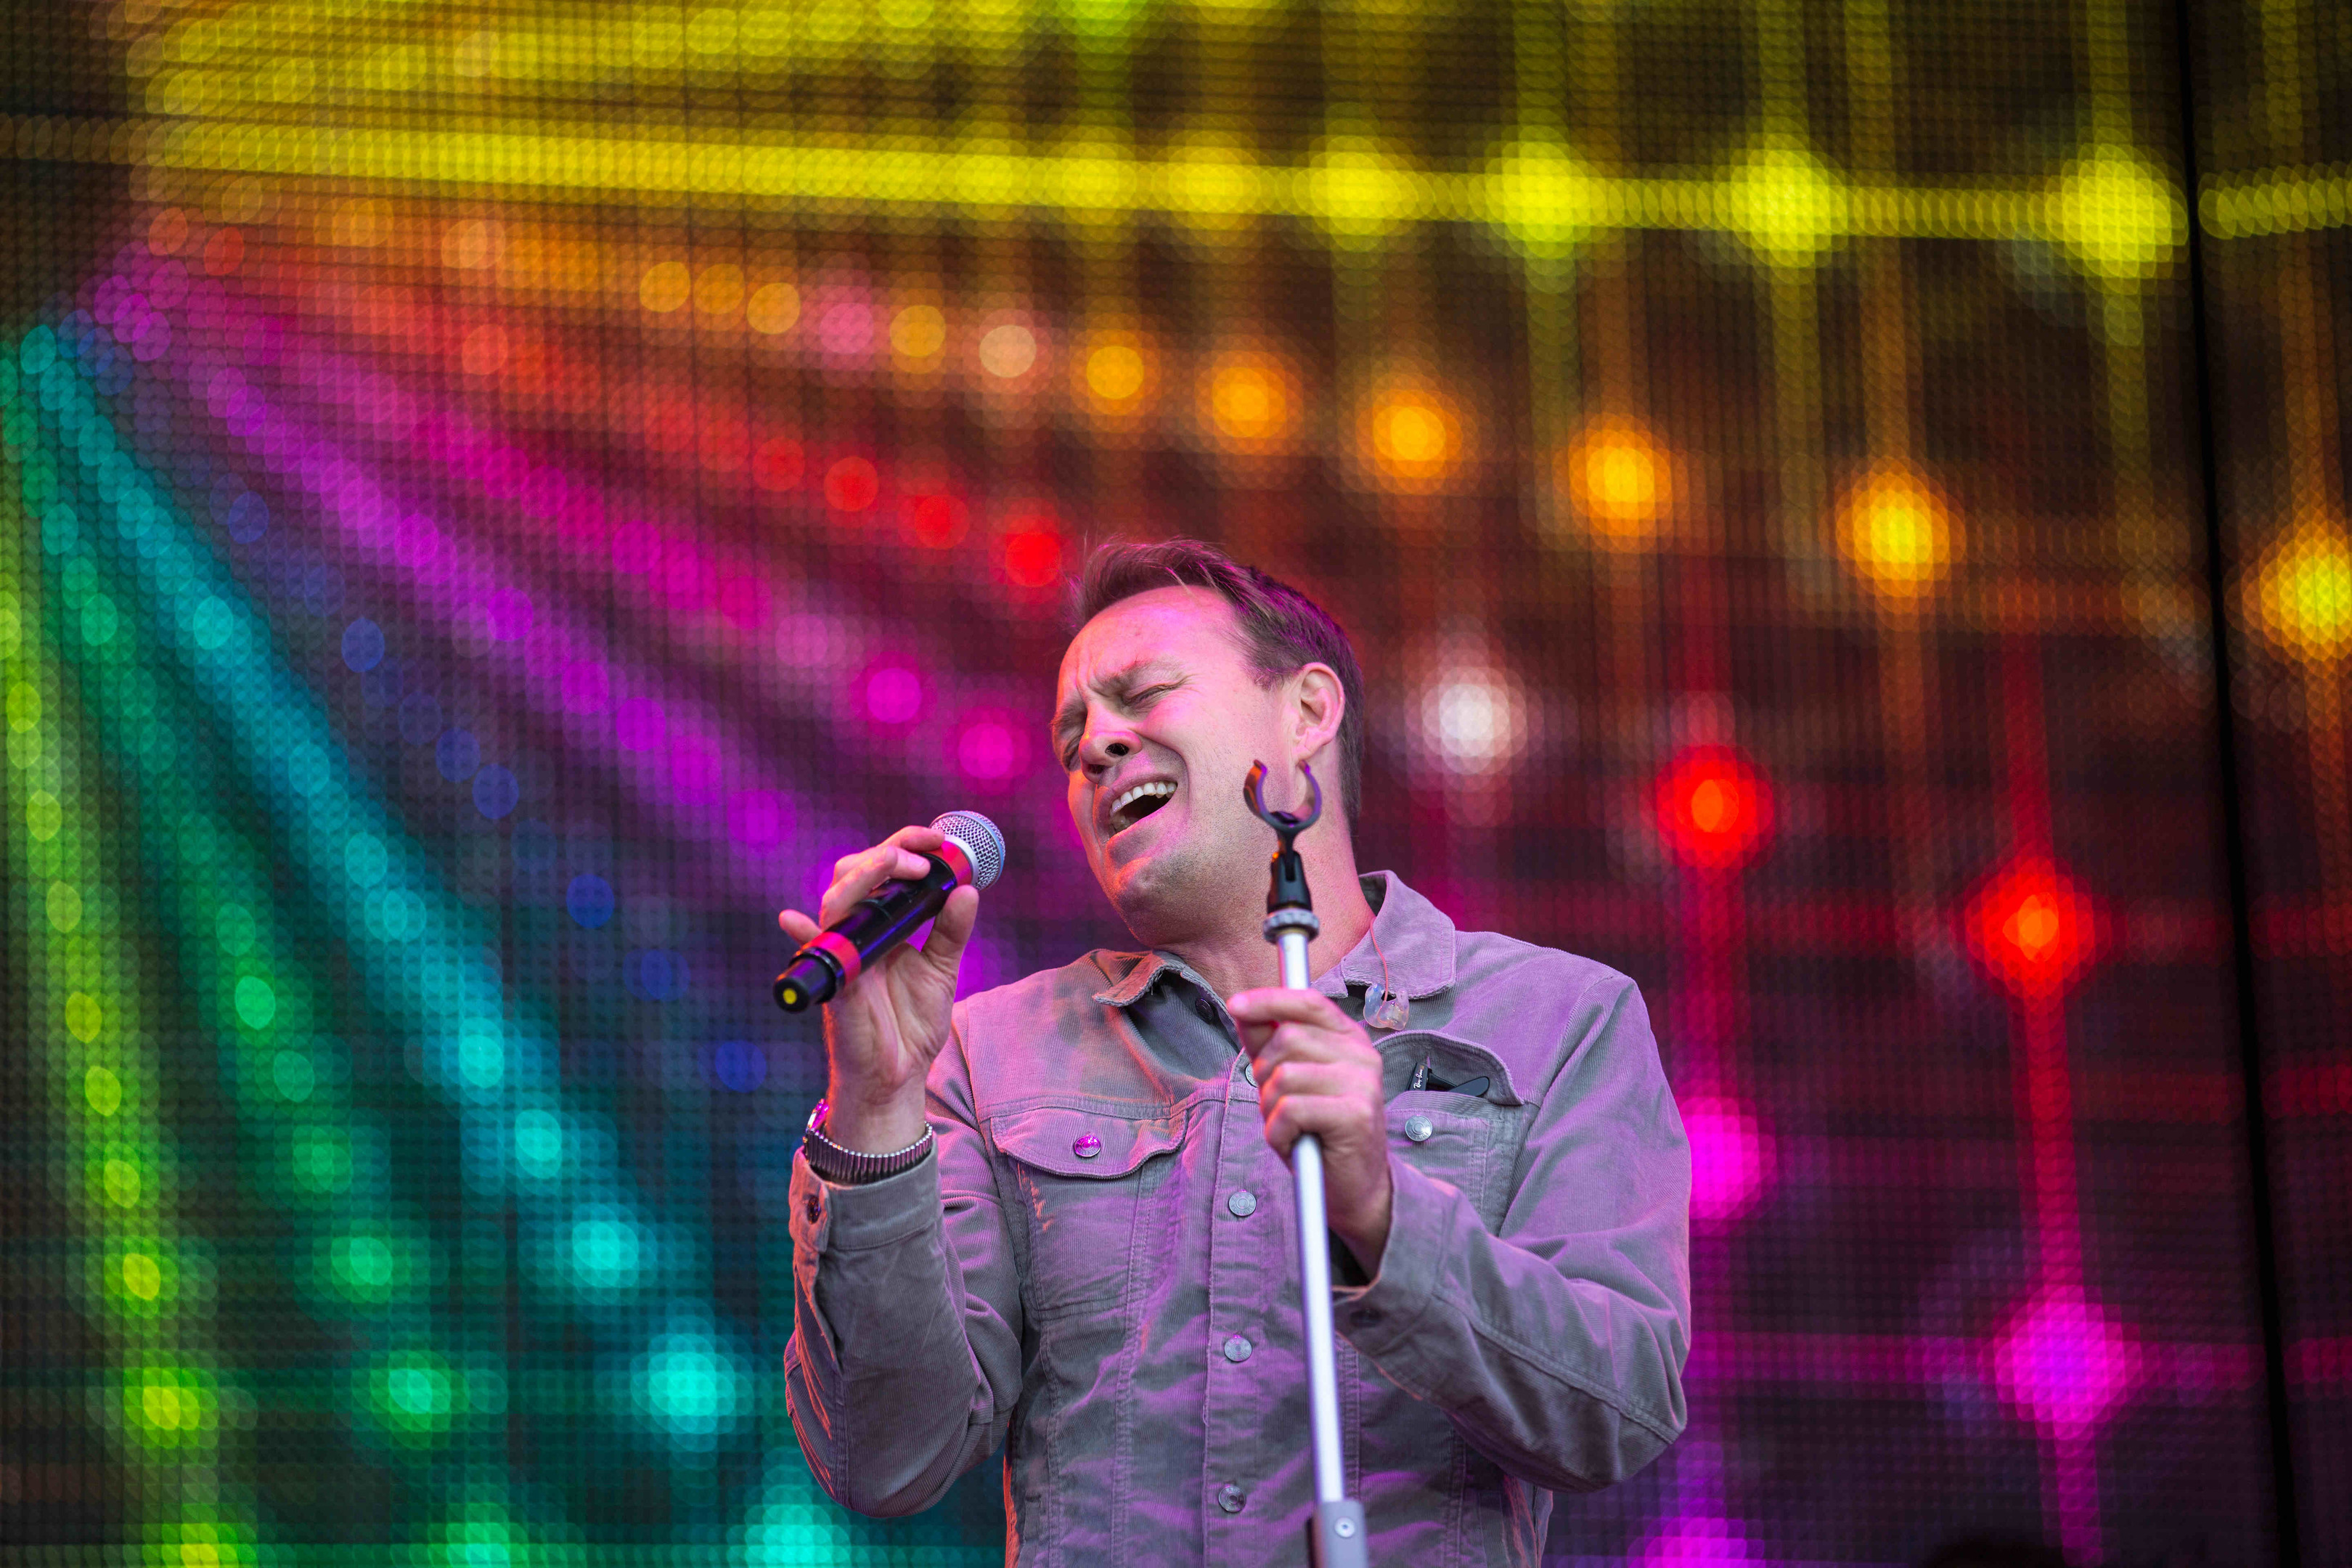 Jason Donovan on stage at Rewind (Justin Moir/Universal News And Sport)